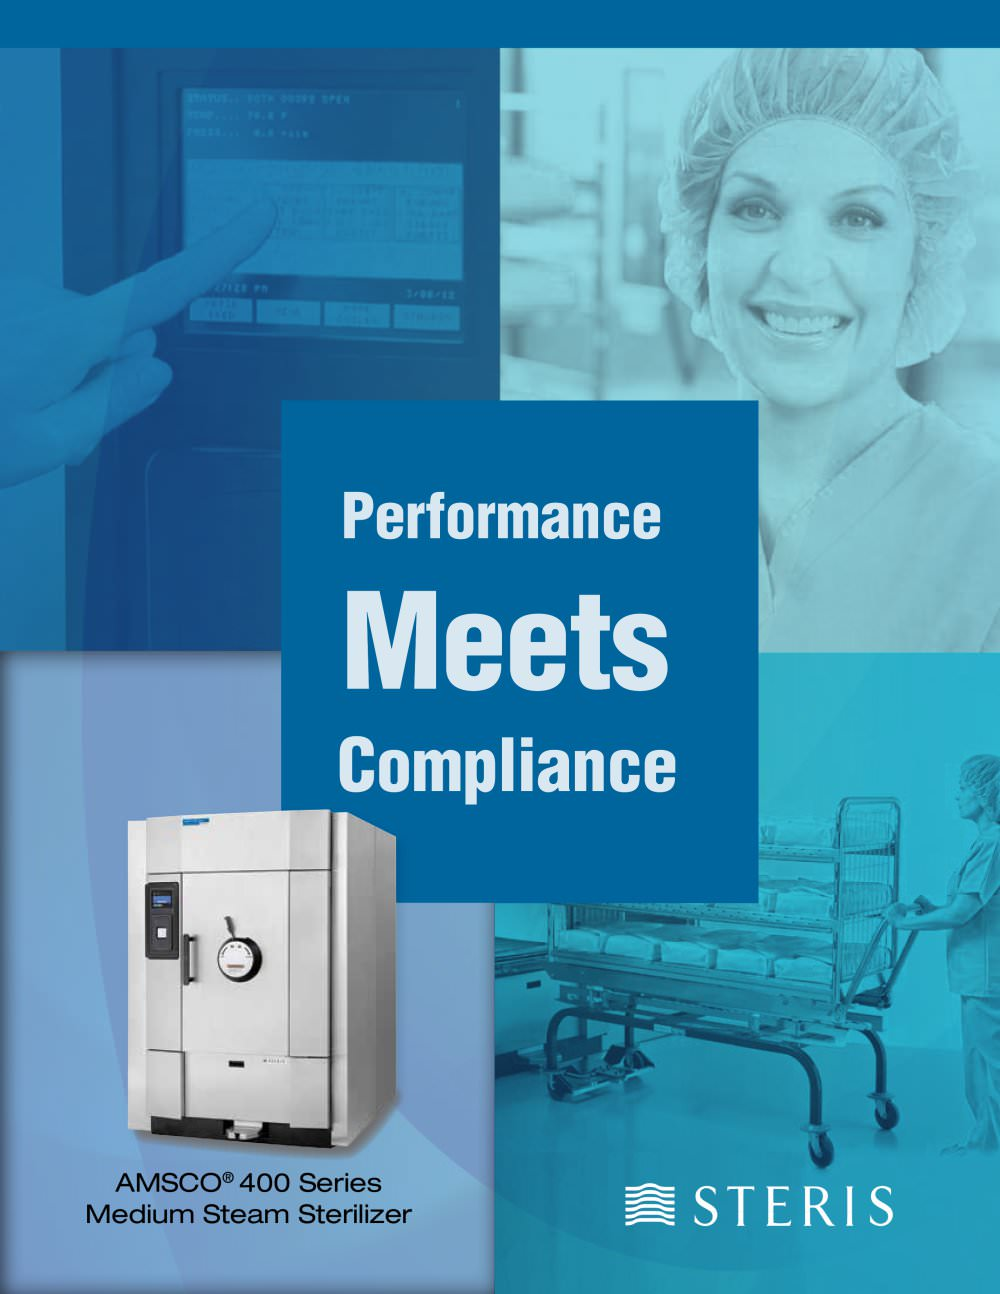 AMSCO 400 SERIES MEDIUM STEAM STERILIZER BROCHURE - PERFORMANCE MEETS  COMPLIANCE - 1 / 4 Pages